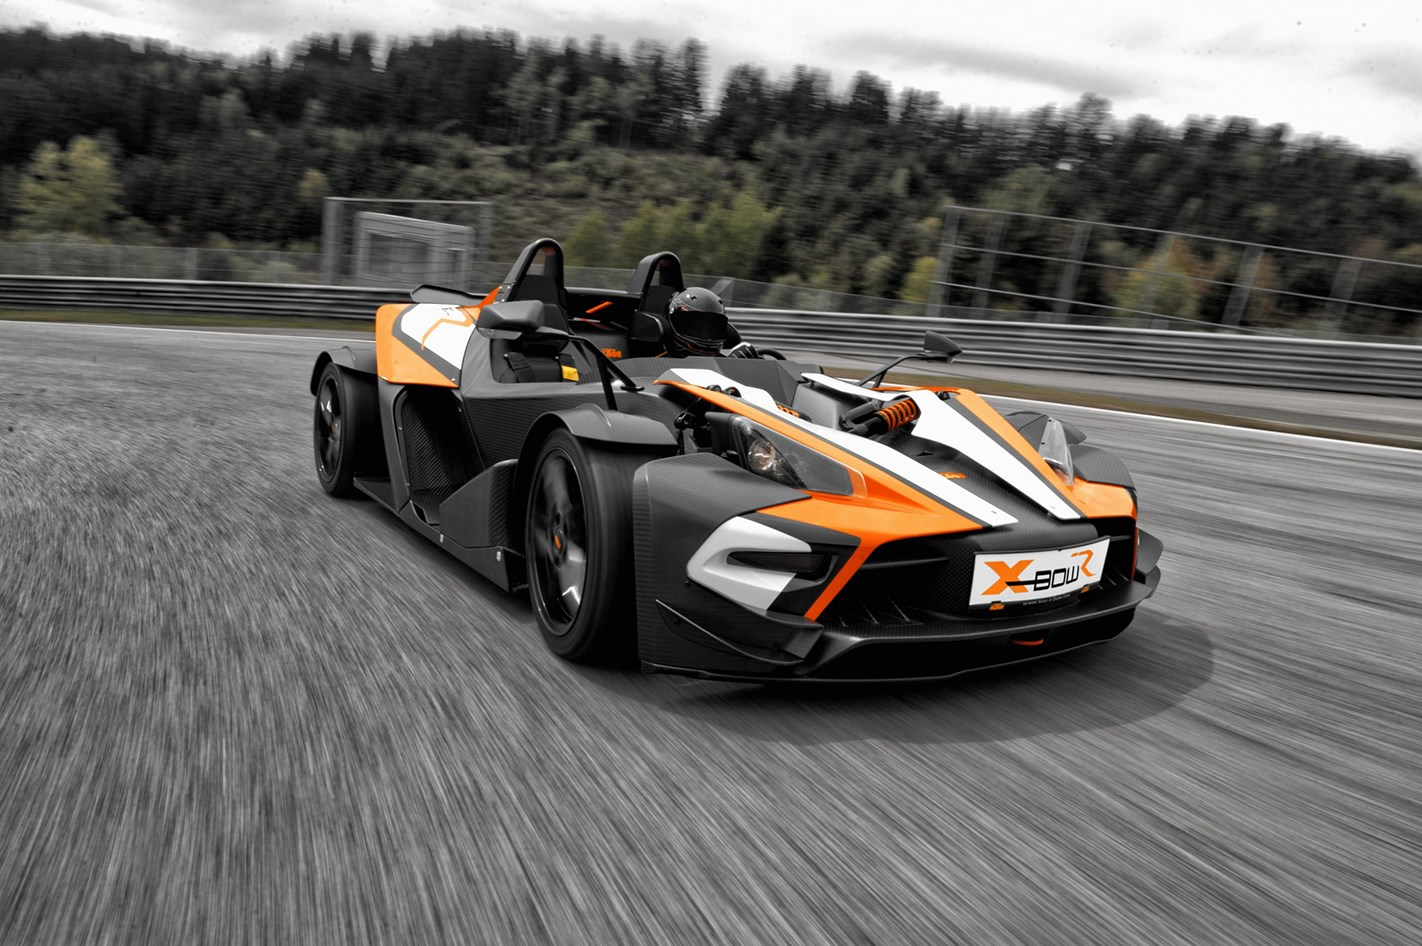 All Types ktm x-bow specs : KTM X-Bow to launch in Australia | Wheels